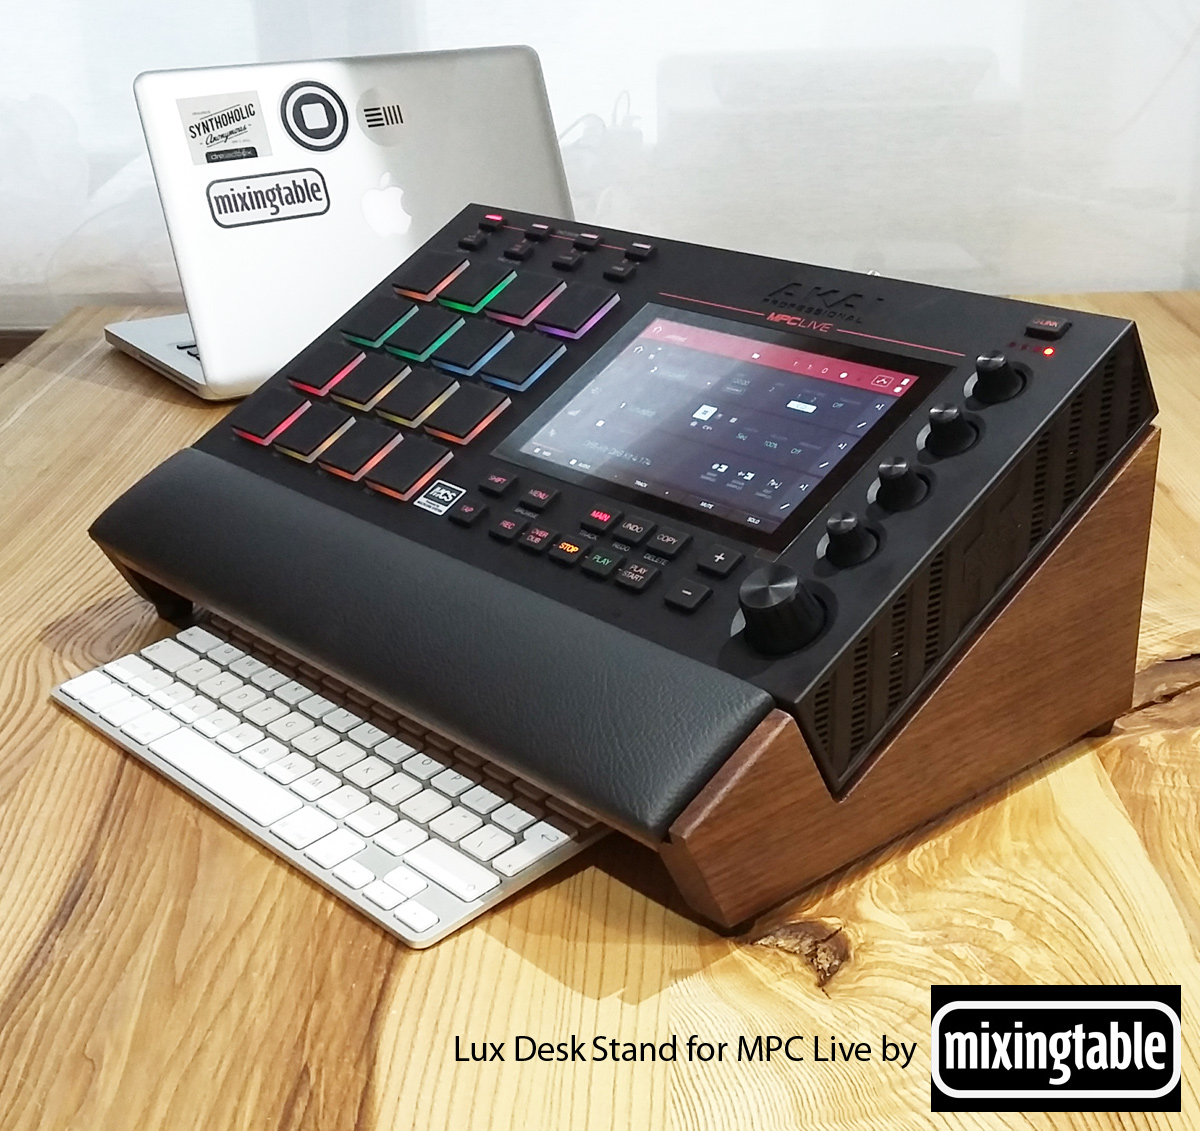 Lux Desk Stand for MPC Live   Mixingtable com